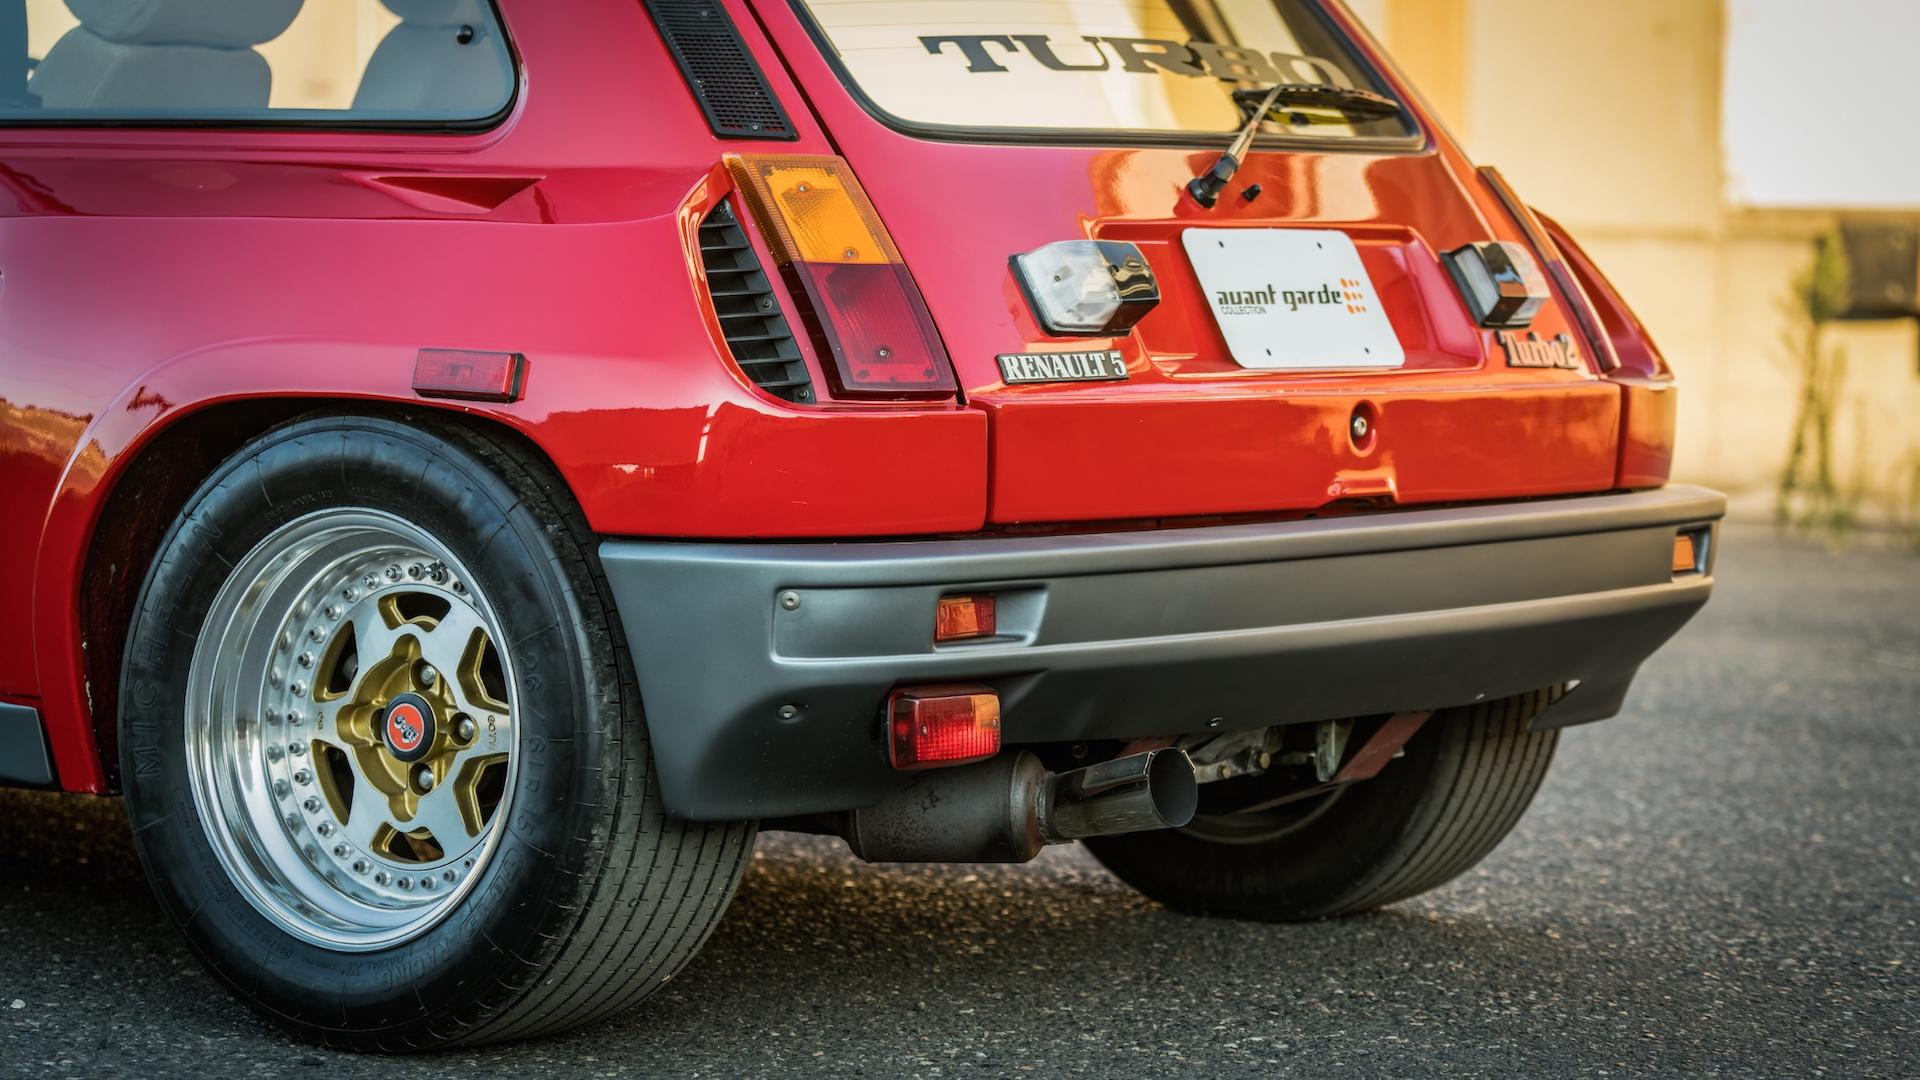 Renault_5_Turbo_2_Evo_28